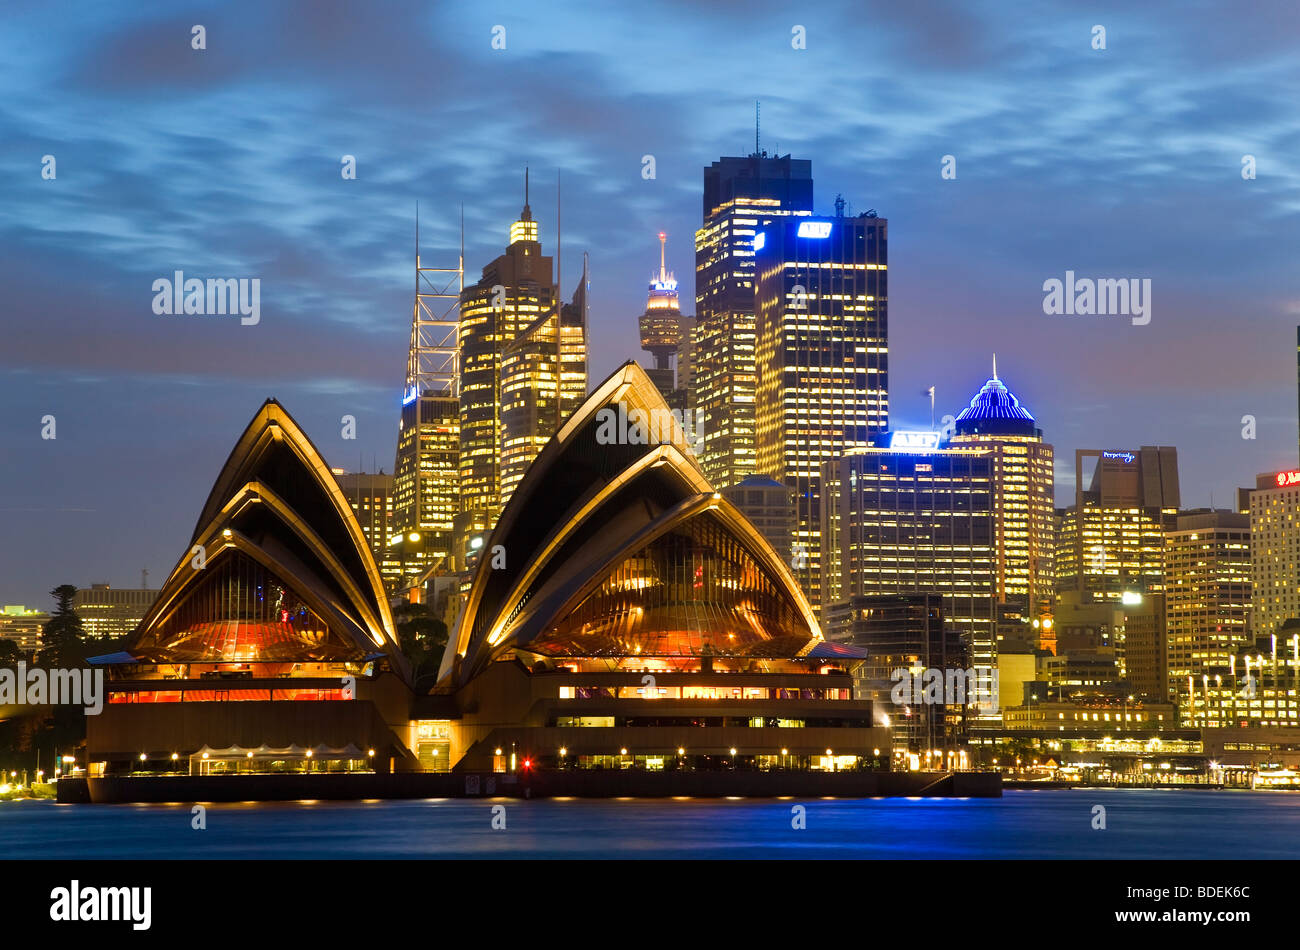 Australia, Sydney, View across Sydney harbour to Sydney Opera House & skyline at dusk - Stock Image